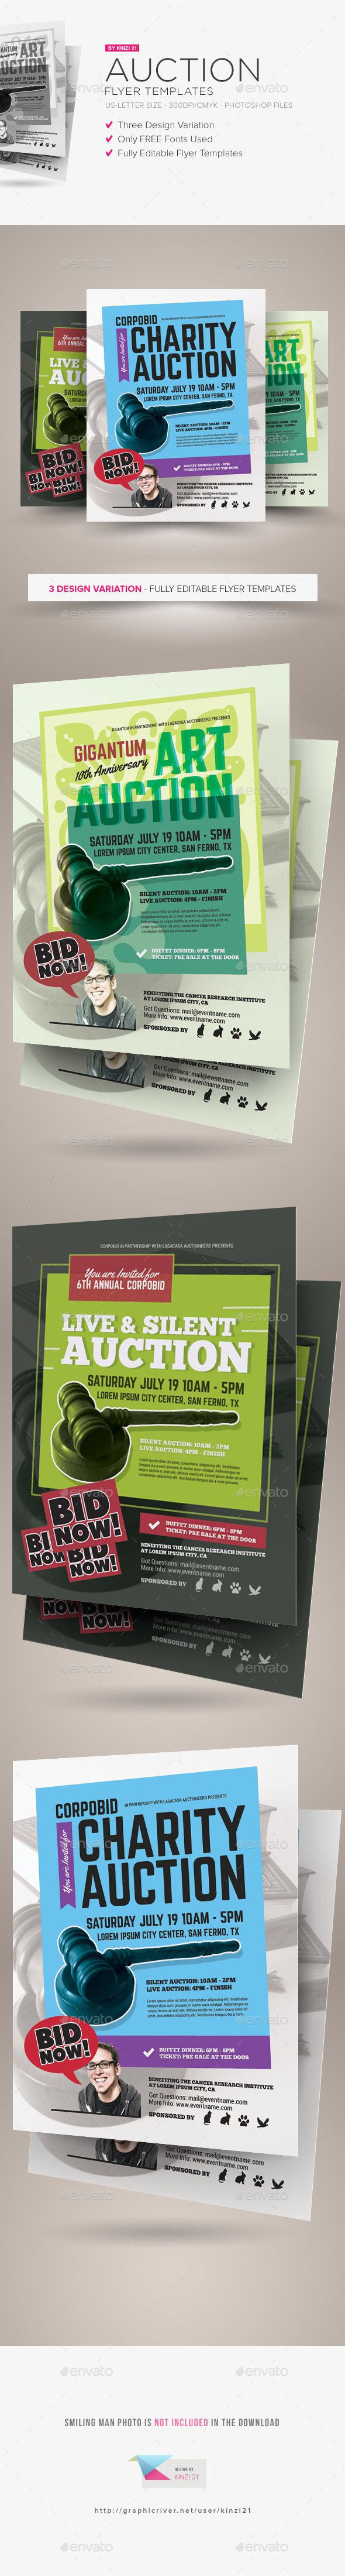 flu shot campaign flyer templates flyer template flyers and auction flyer templates